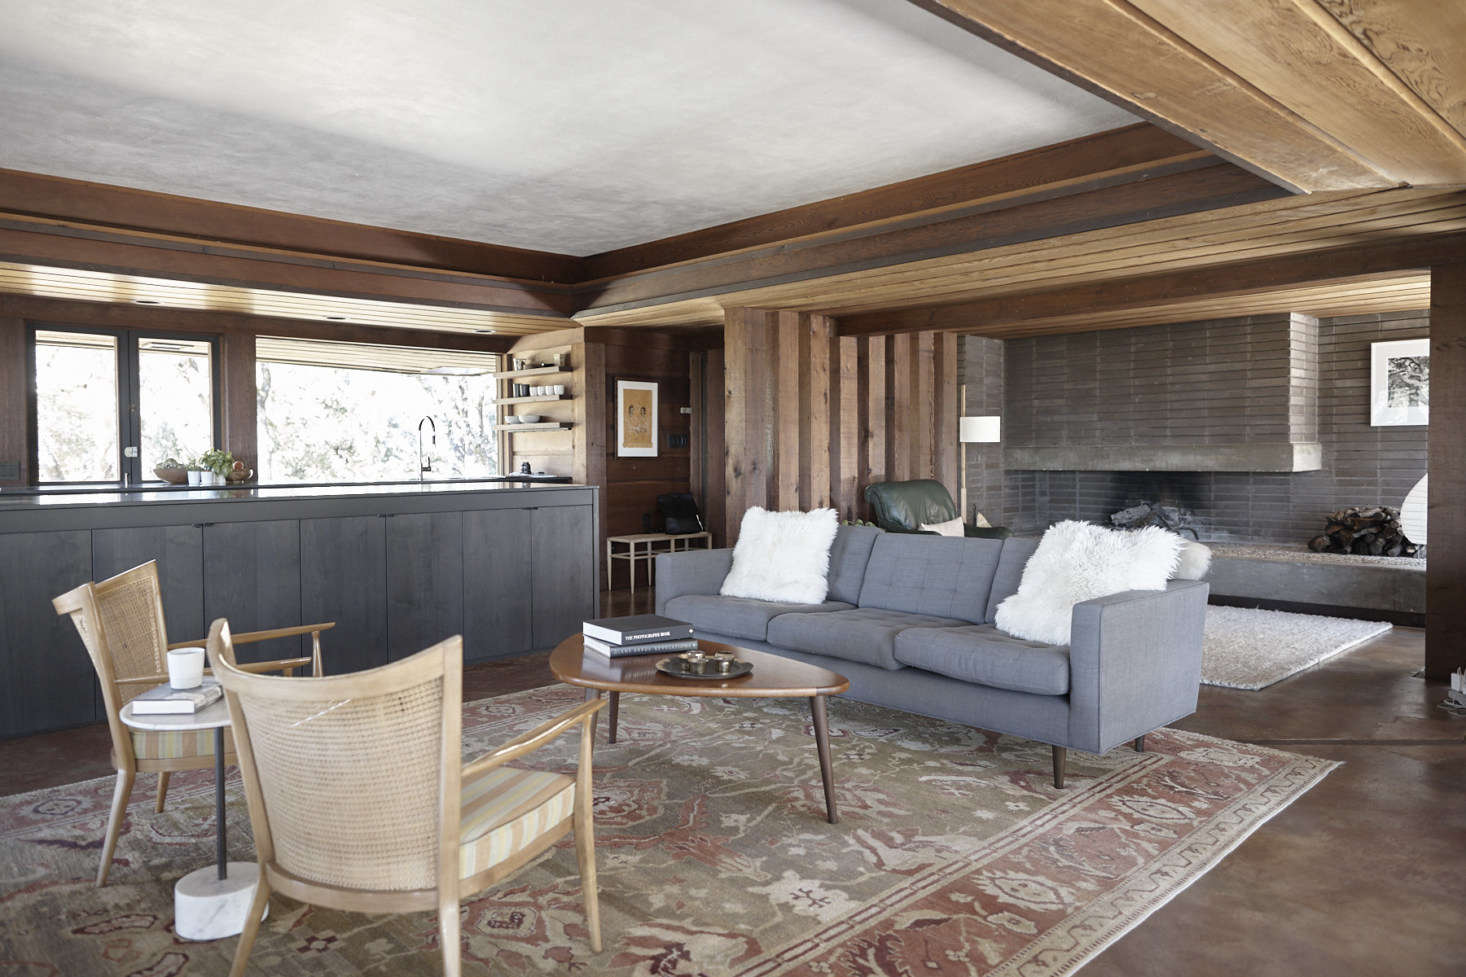 Janet found the vintage Paul McCobb sofa on Chairishand the vintage teak cane-backed Paul McCobb lounge chairs on src=